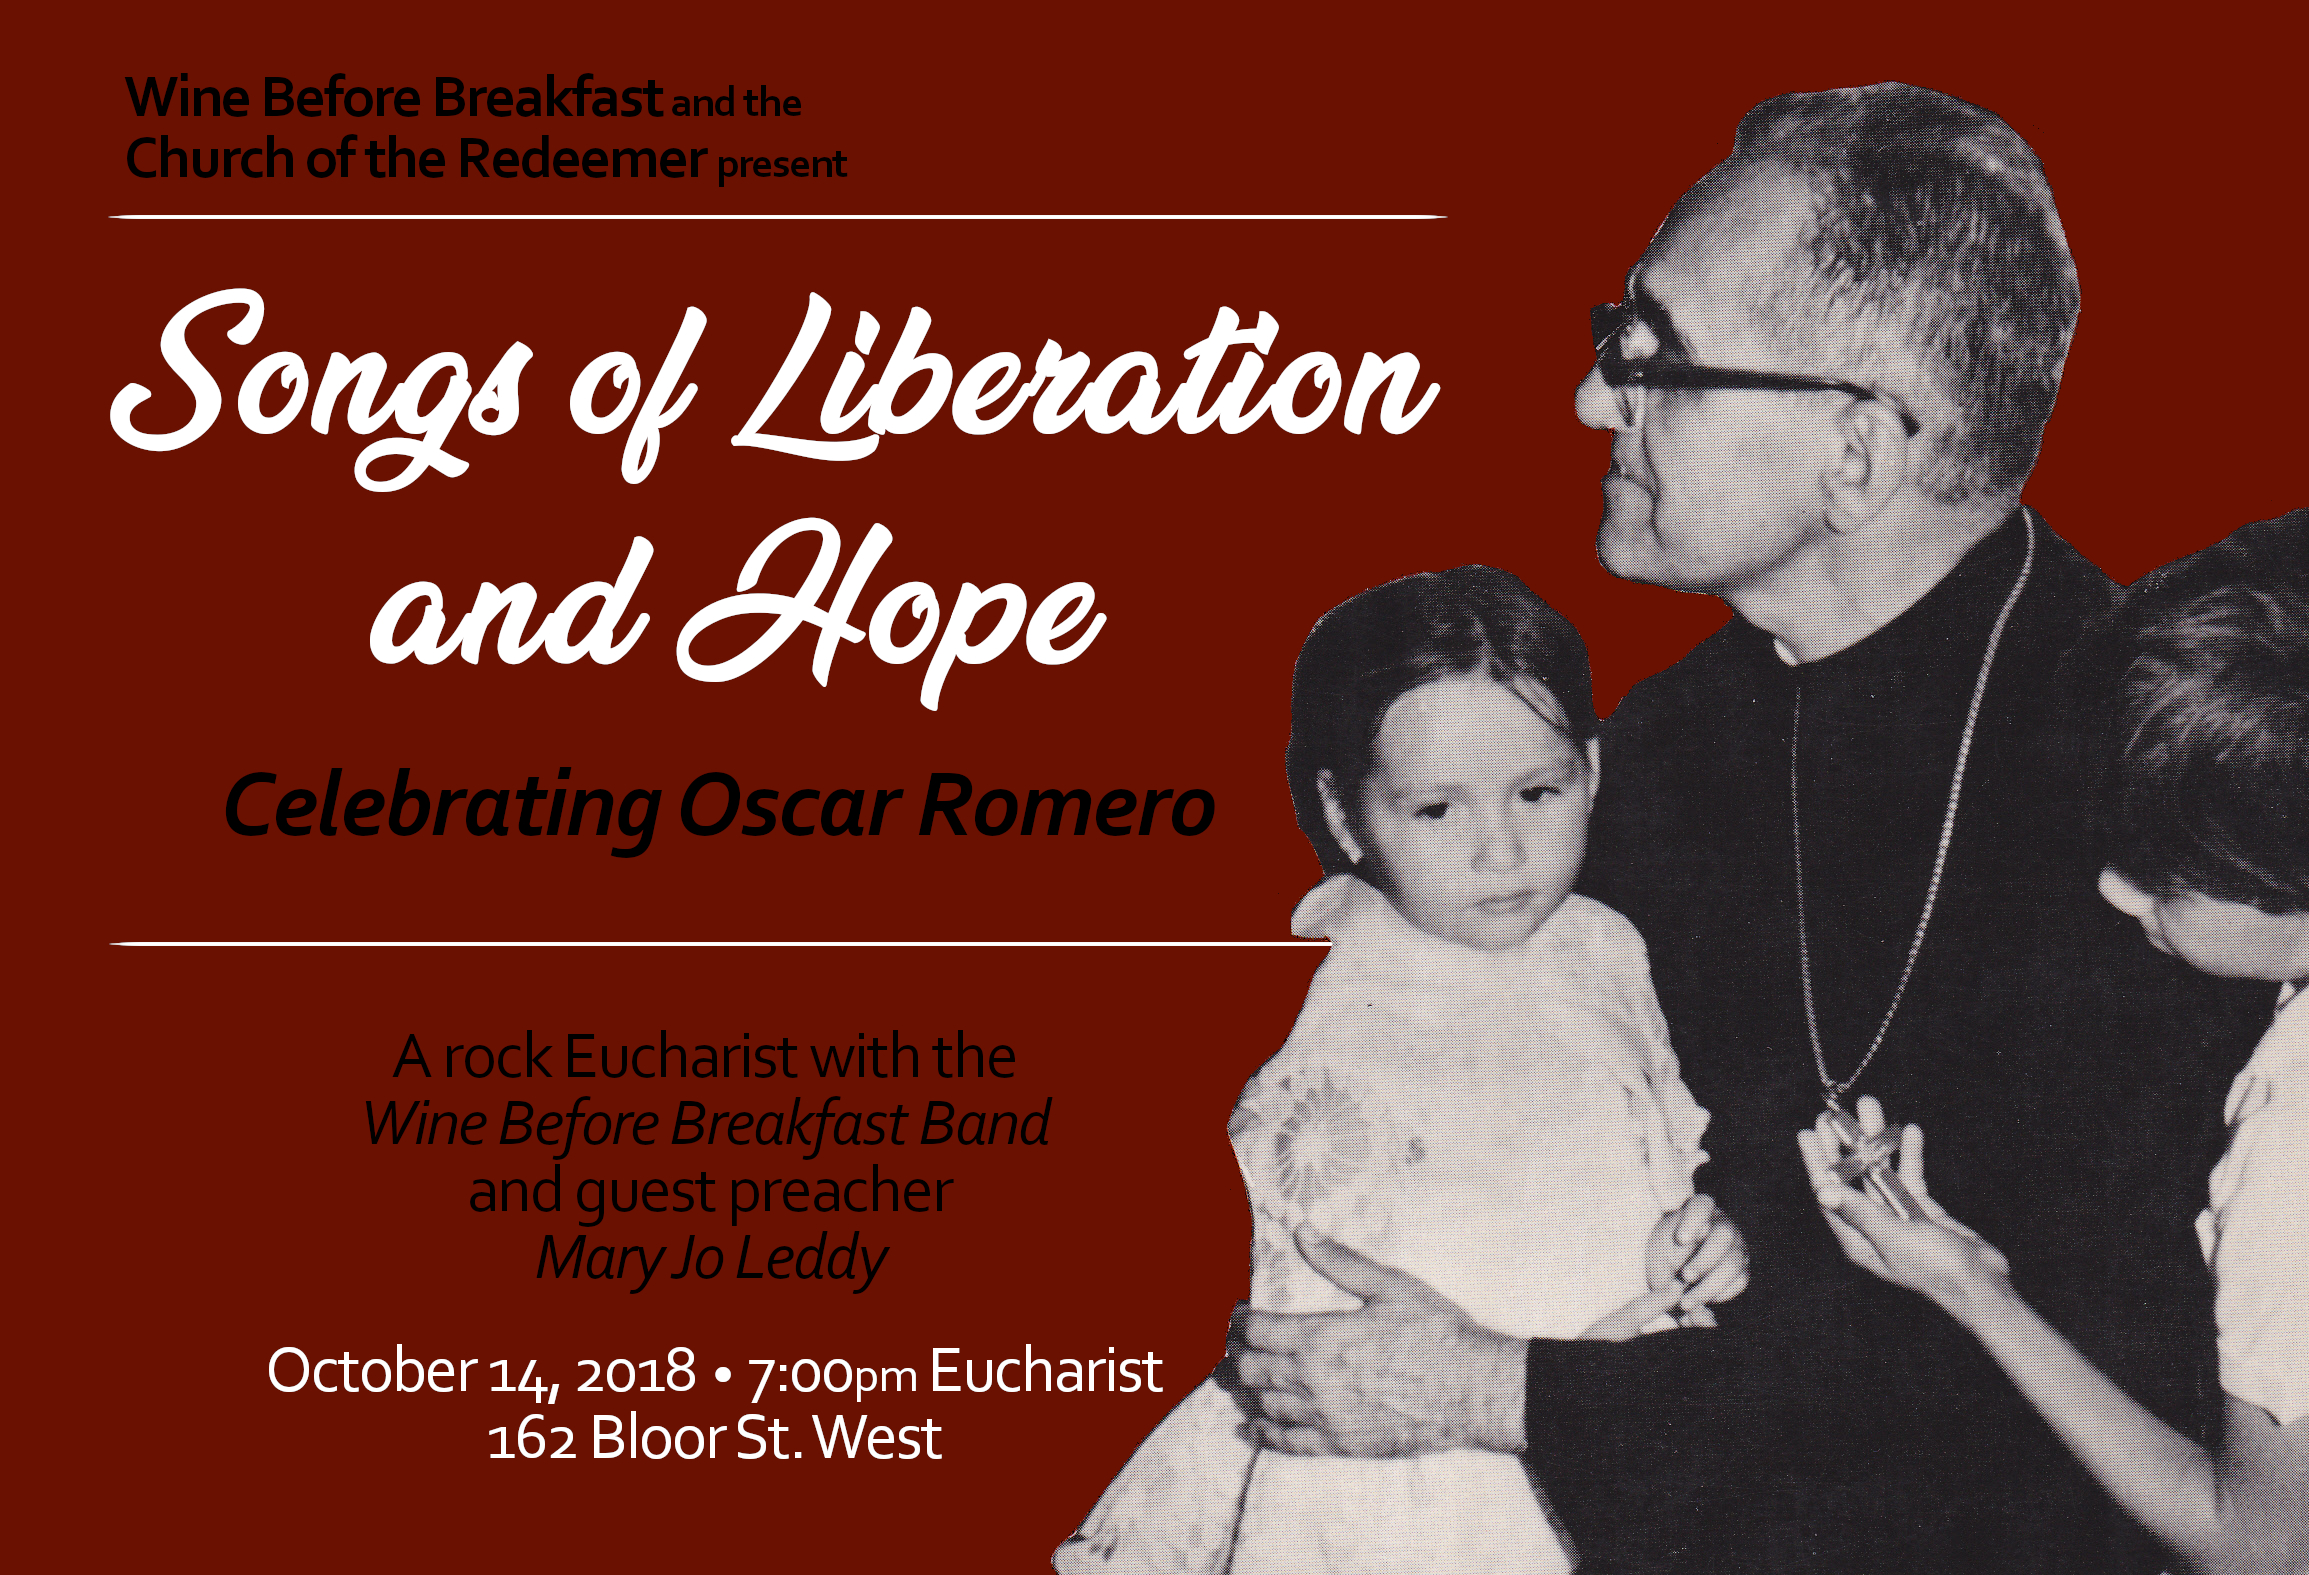 Rock Eucharist Oscar Romero Red